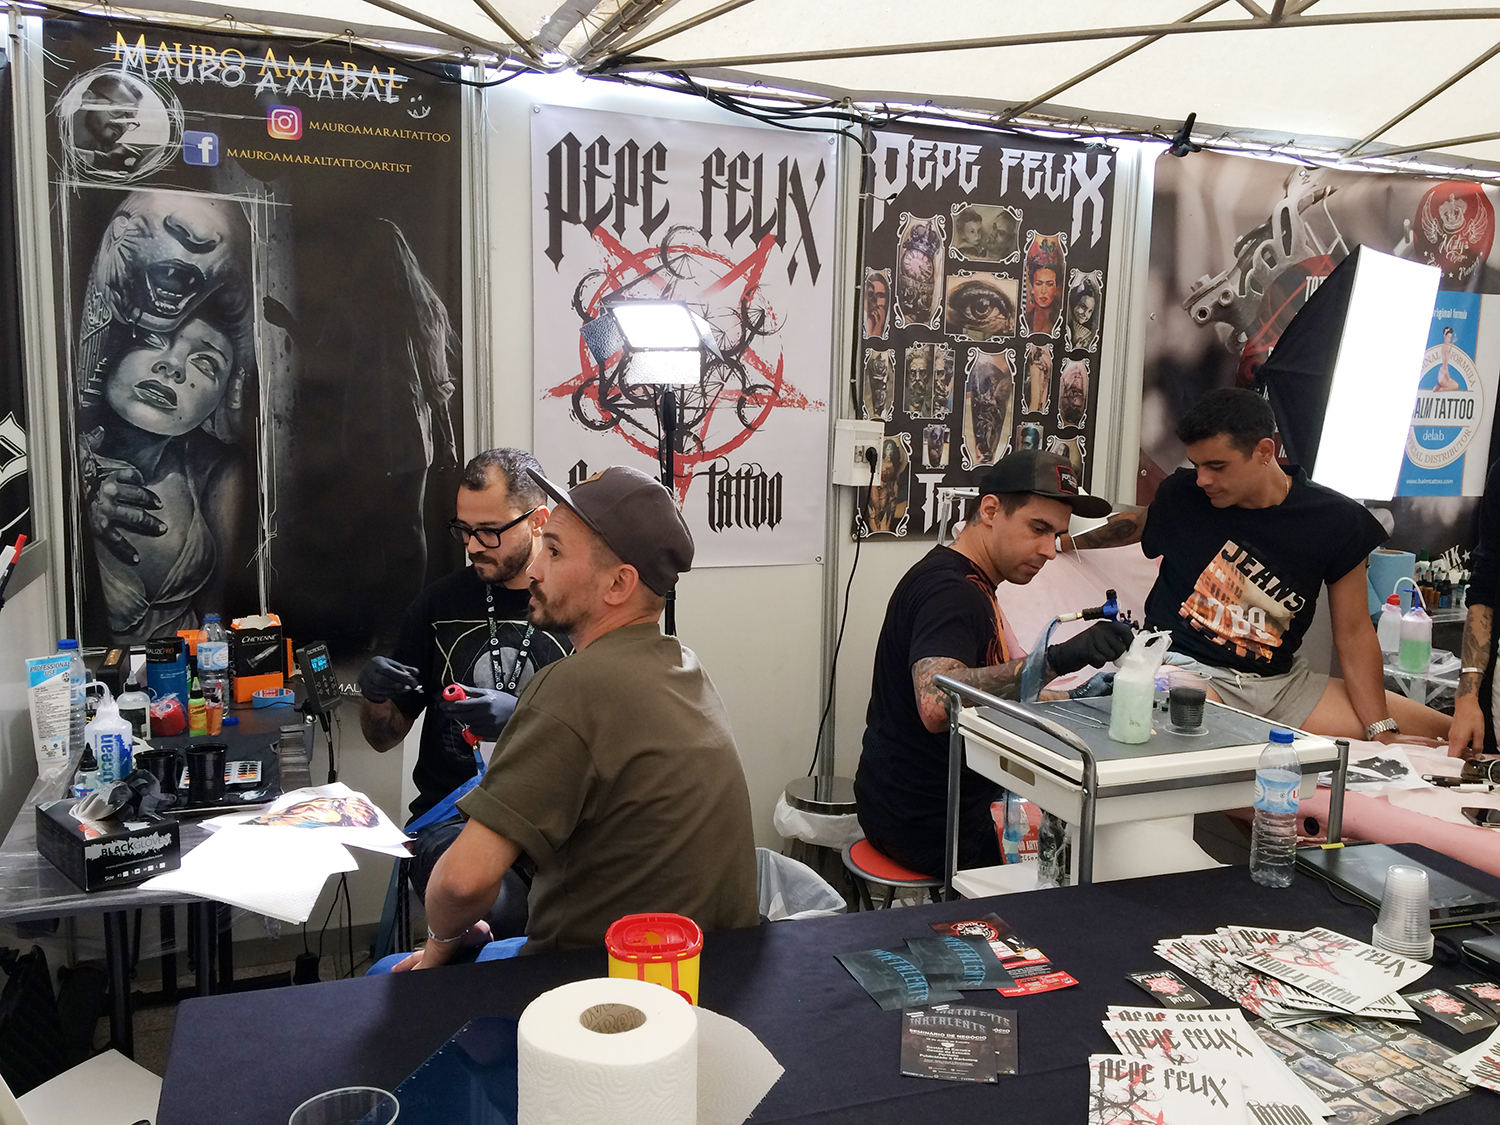 tattoo convention photo at booth